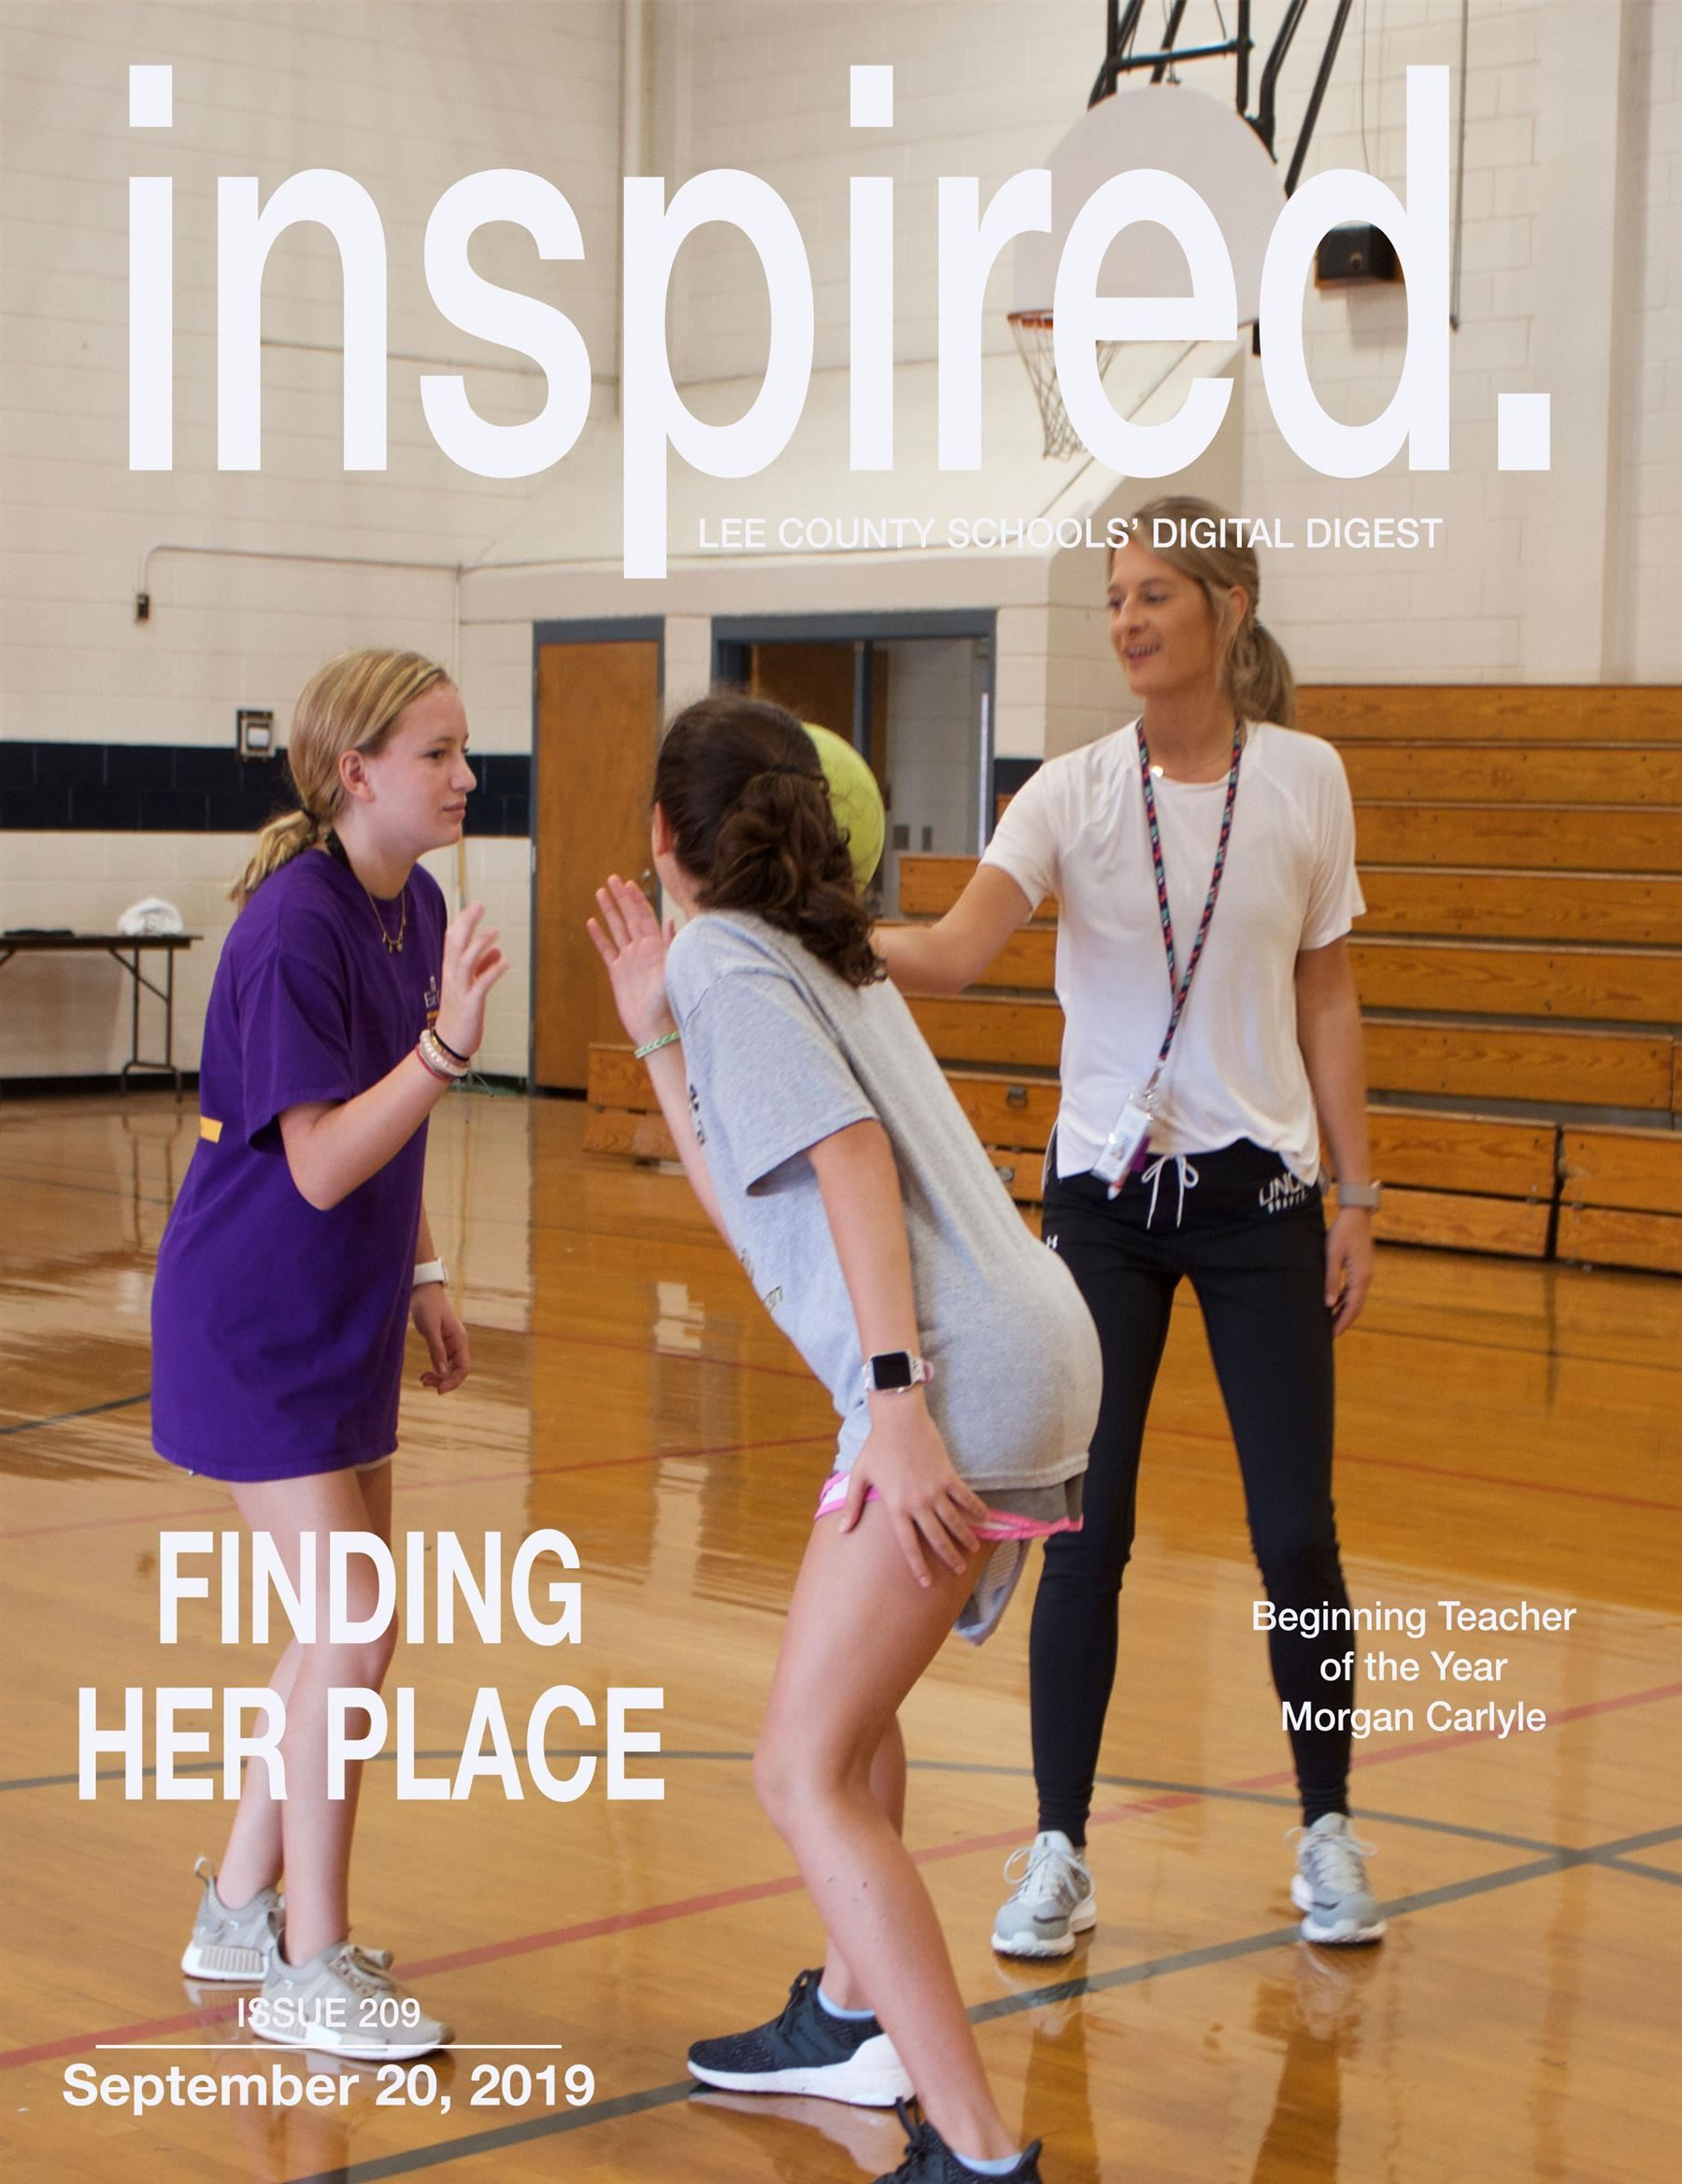 INSPIRED. FINDING HER PLACE: Beginning Teacher of the Year, Morgan Carlyle